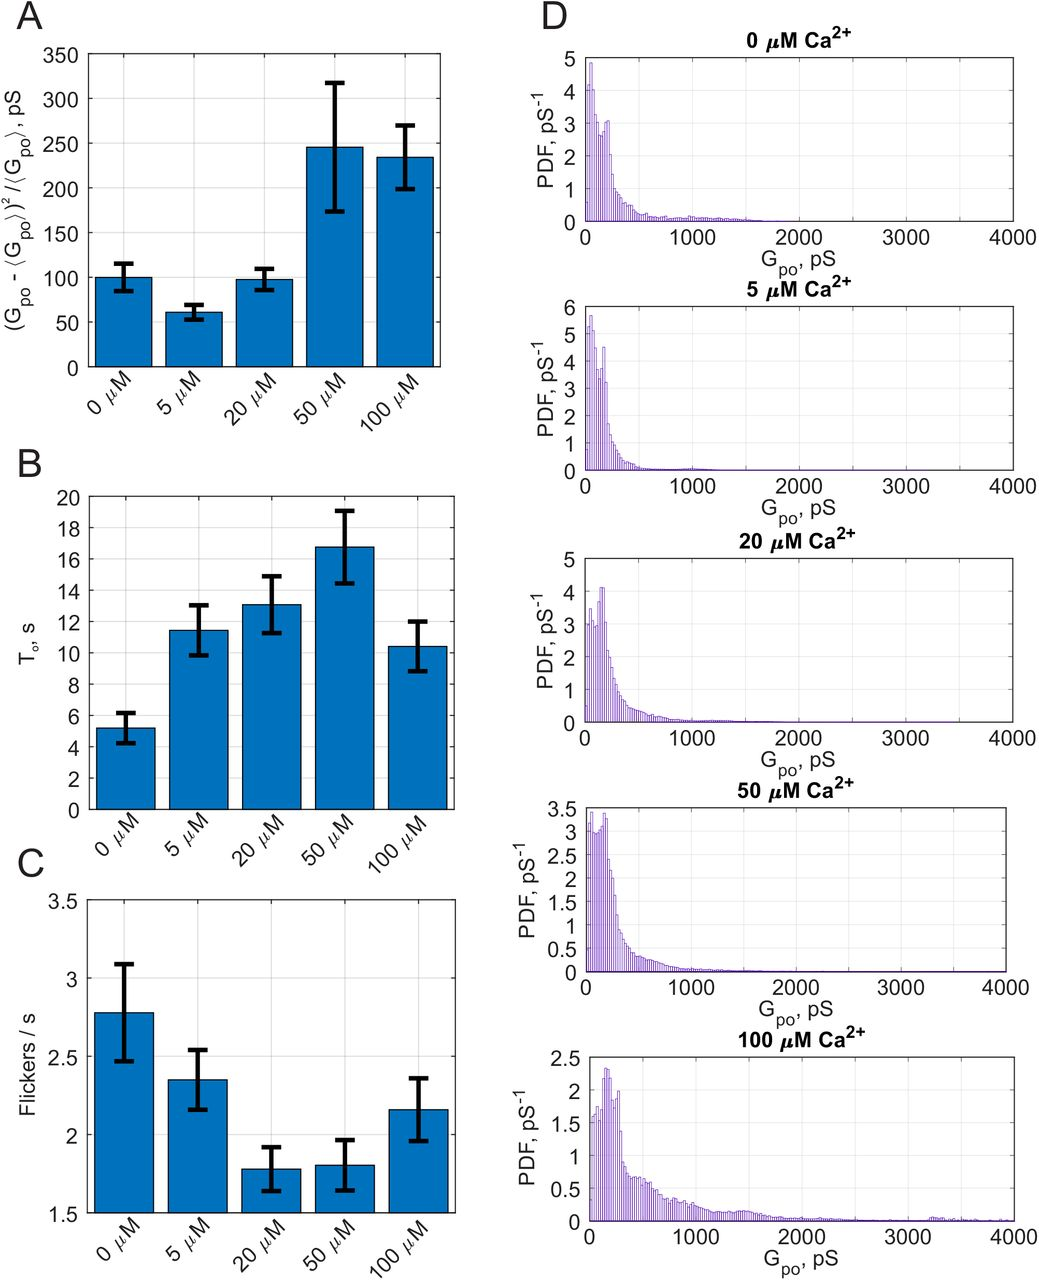 The neuronal calcium sensor Synaptotagmin-1 and SNARE proteins